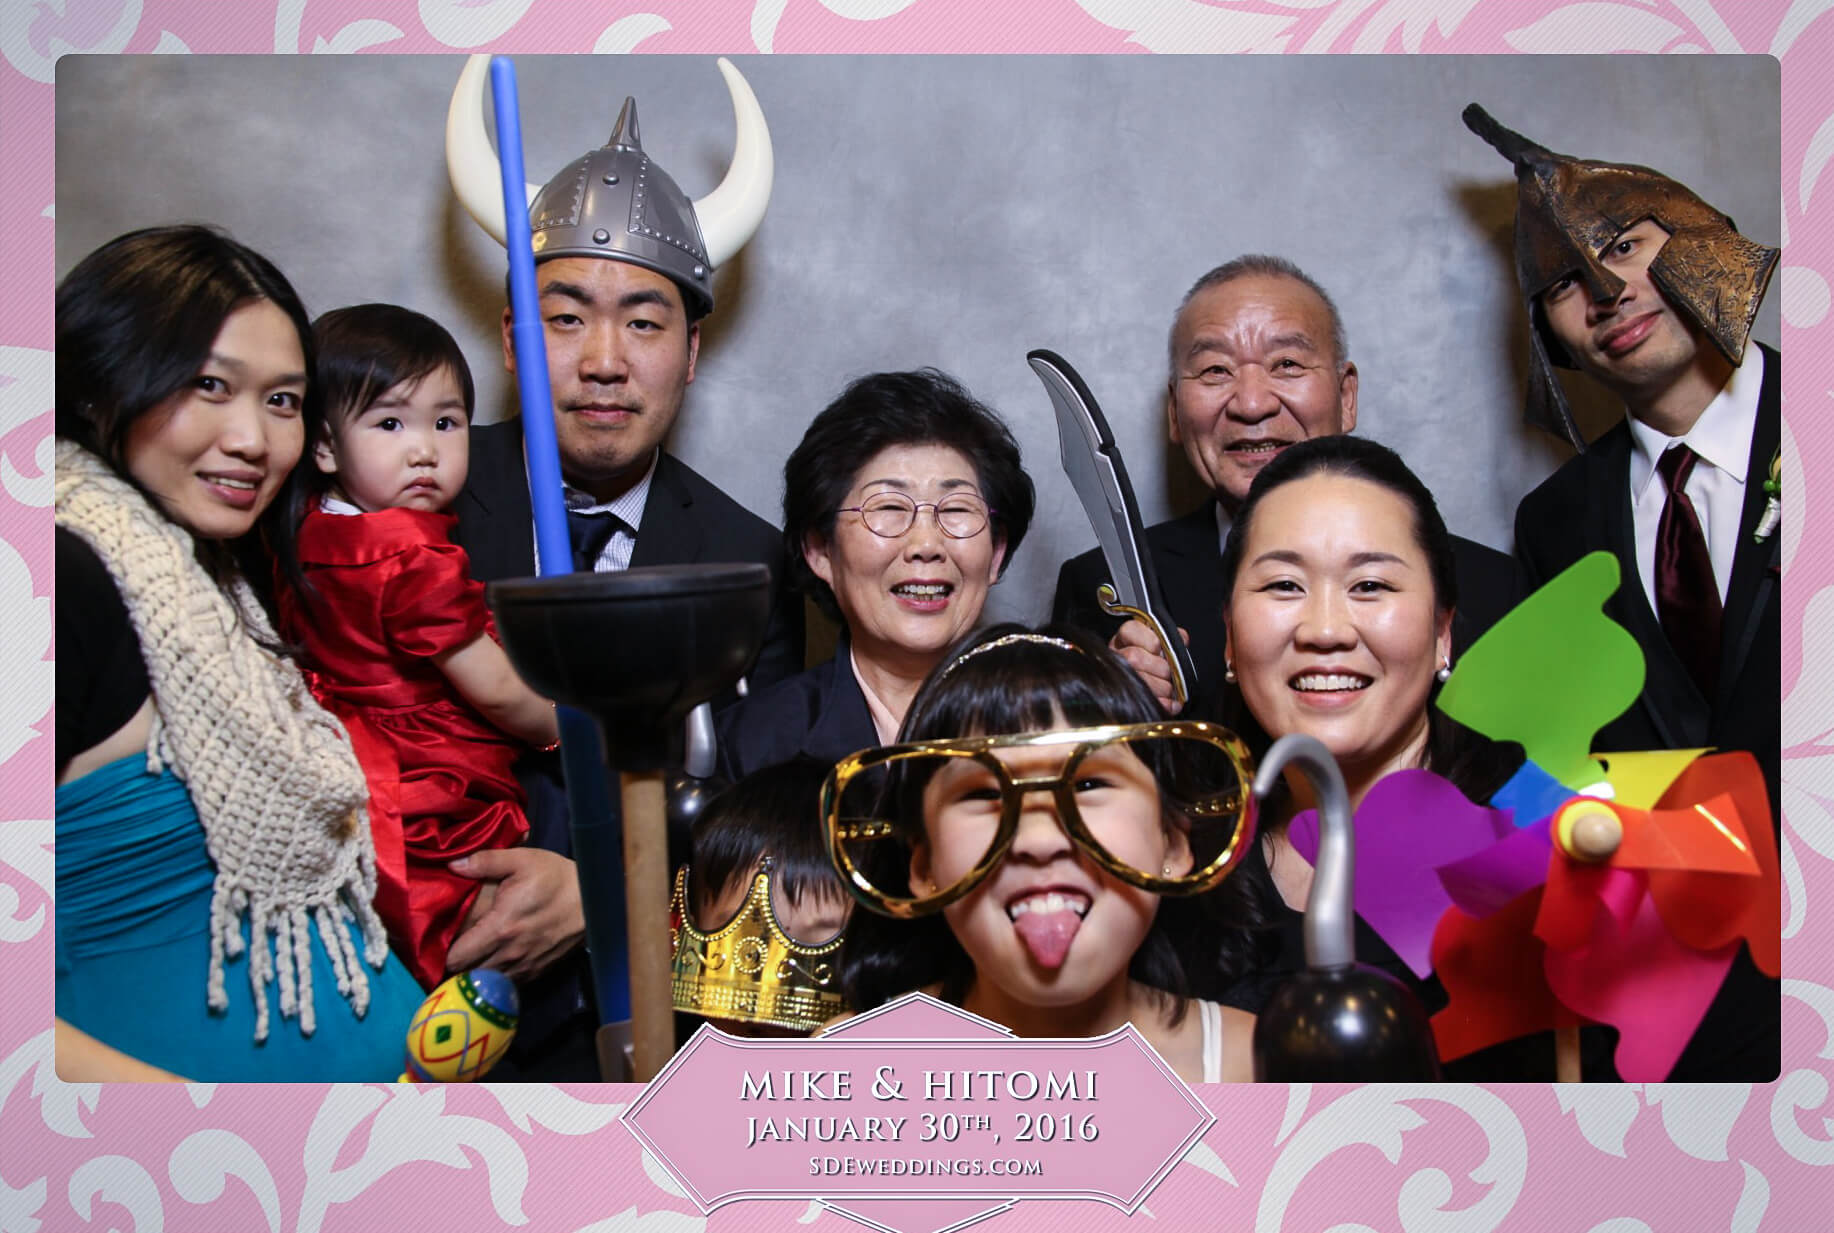 Toronto Spring Villa Wedding Photo Booth Rental 5